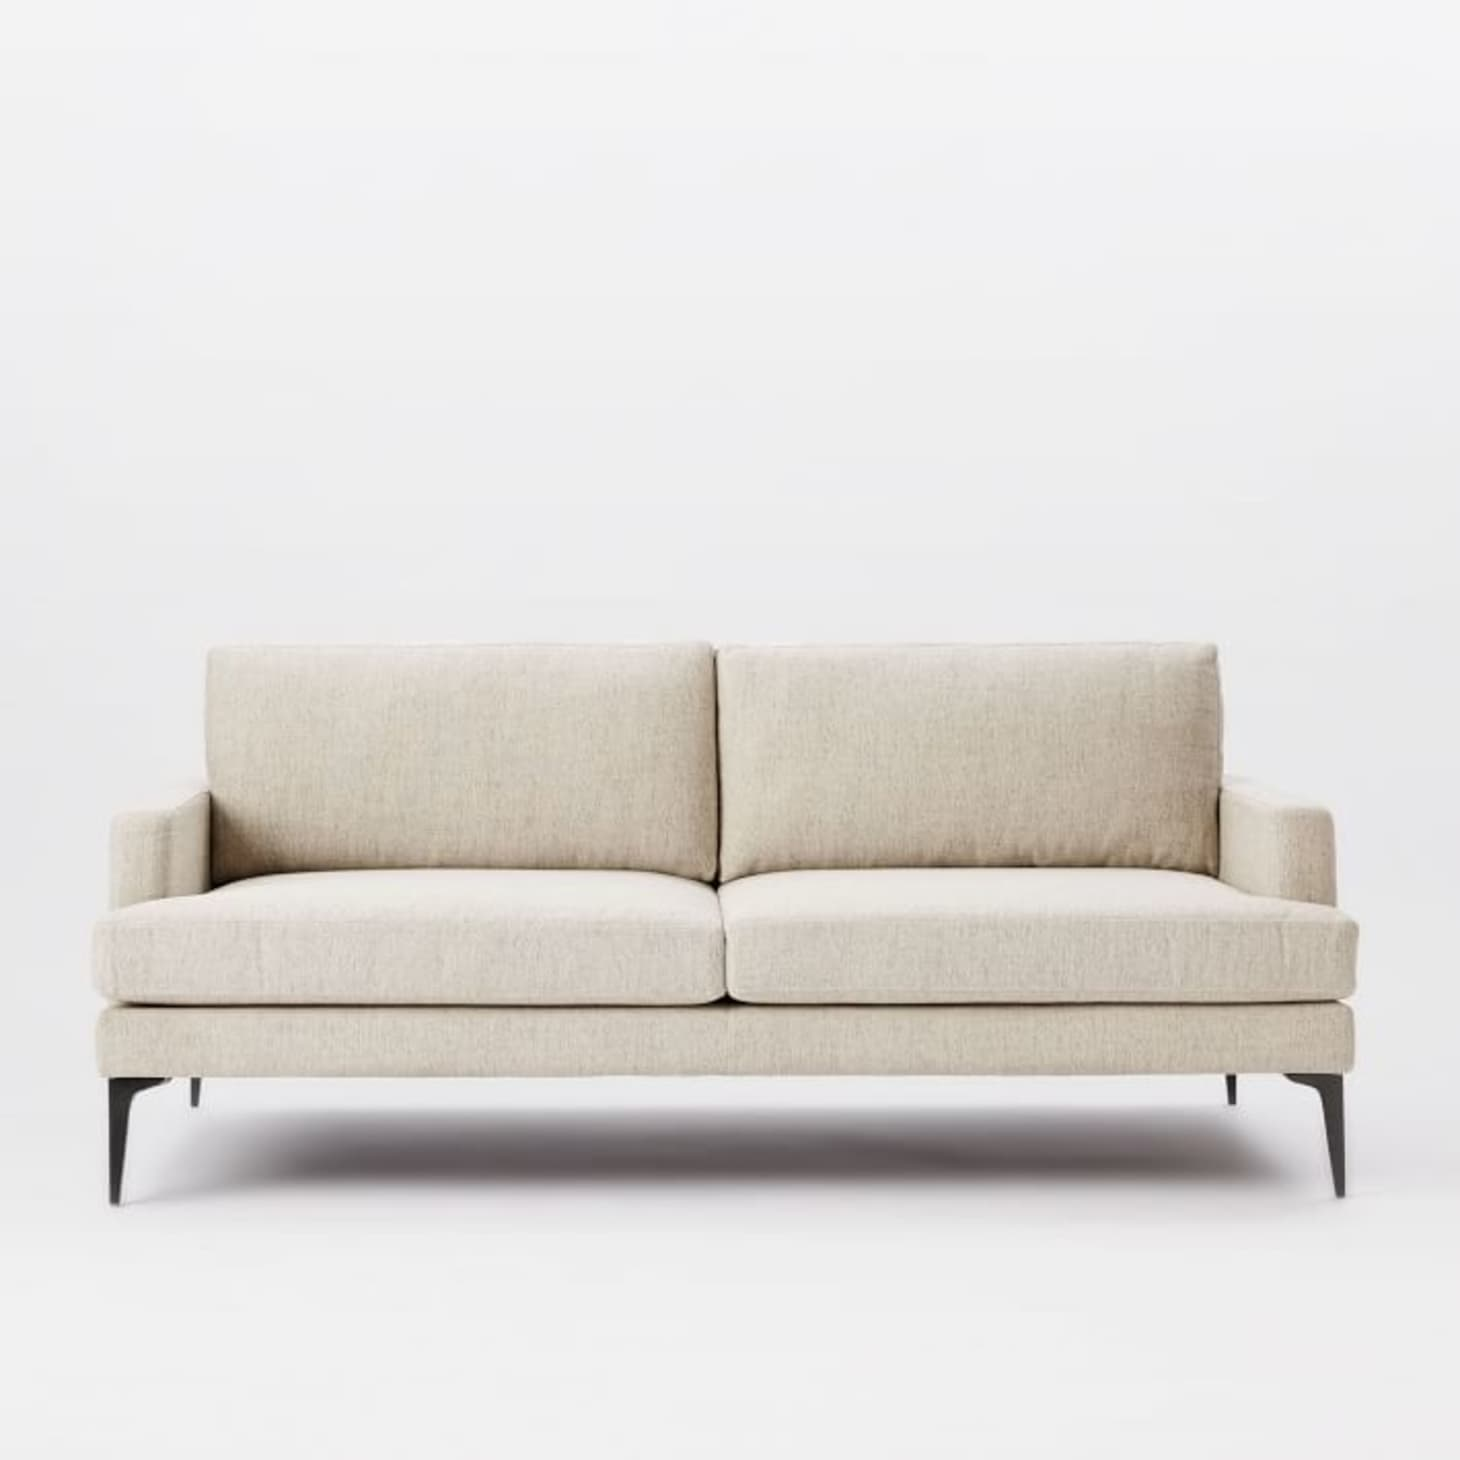 Incredible The Most Comfortable Sofas At West Elm Tested Reviewed Pdpeps Interior Chair Design Pdpepsorg